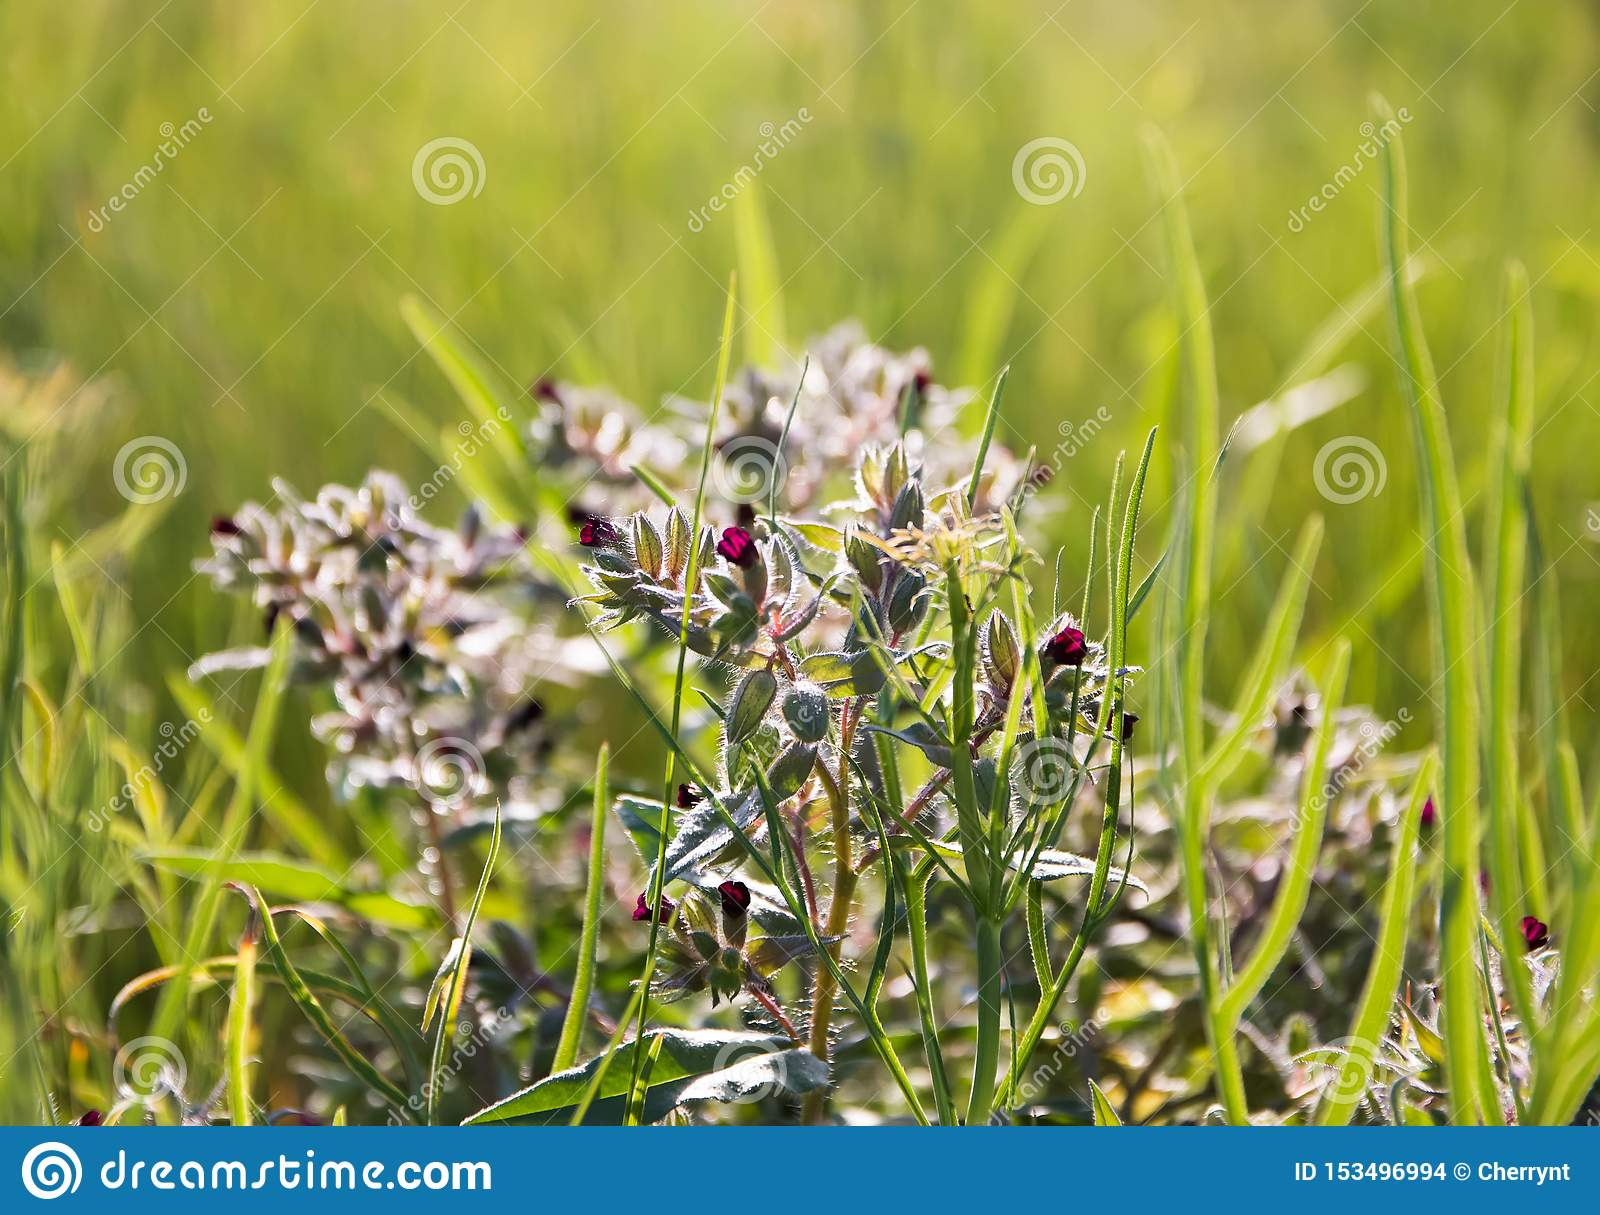 Small flowering flowers, on a green meadow